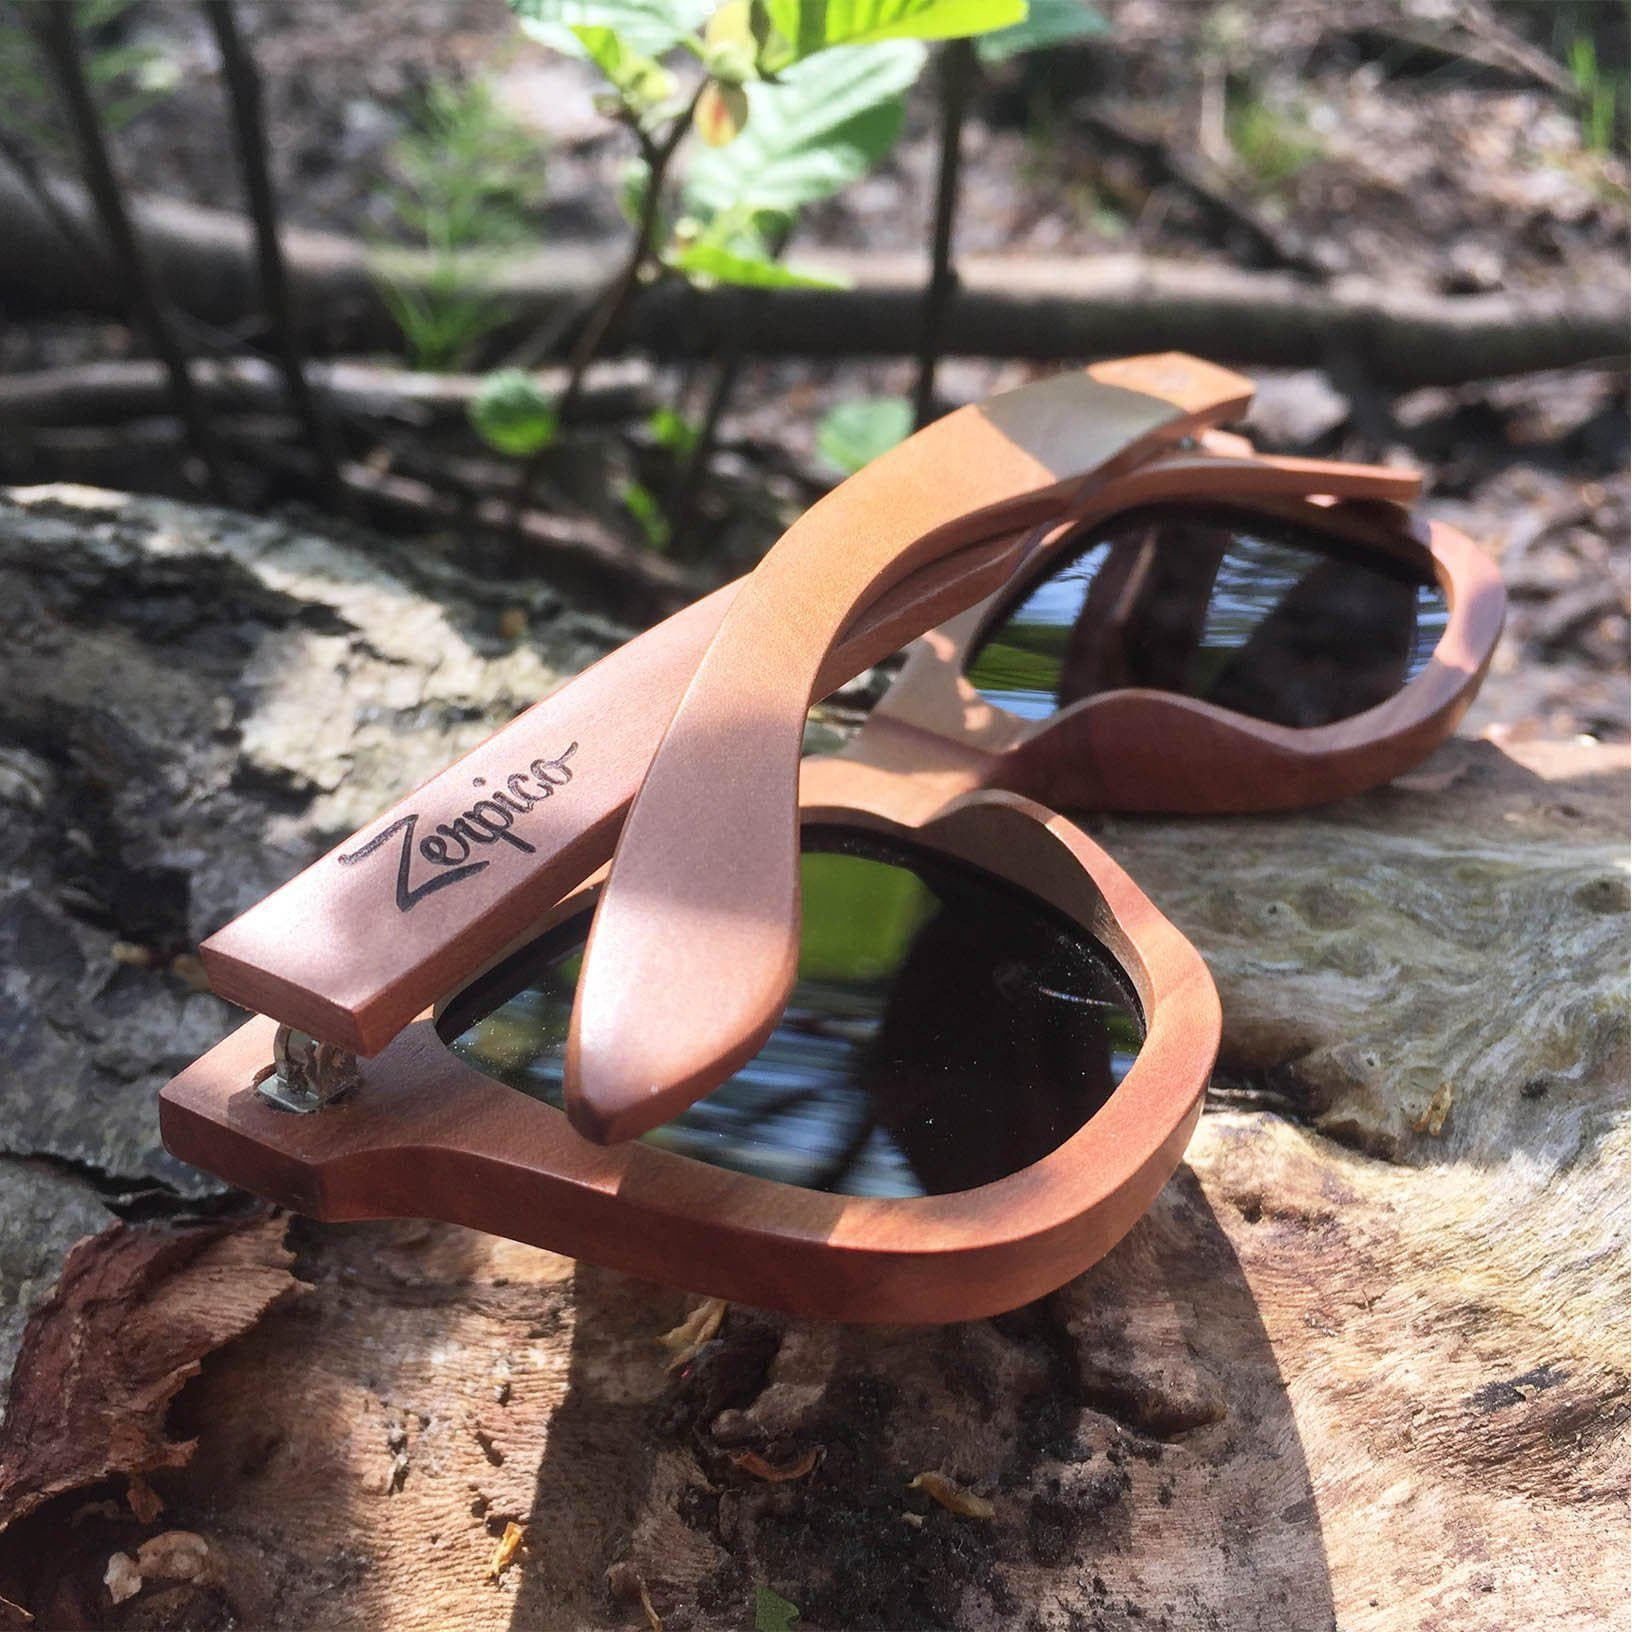 Eyewood Wayfarer - Wade - All wooden sunglasses in the forest sun